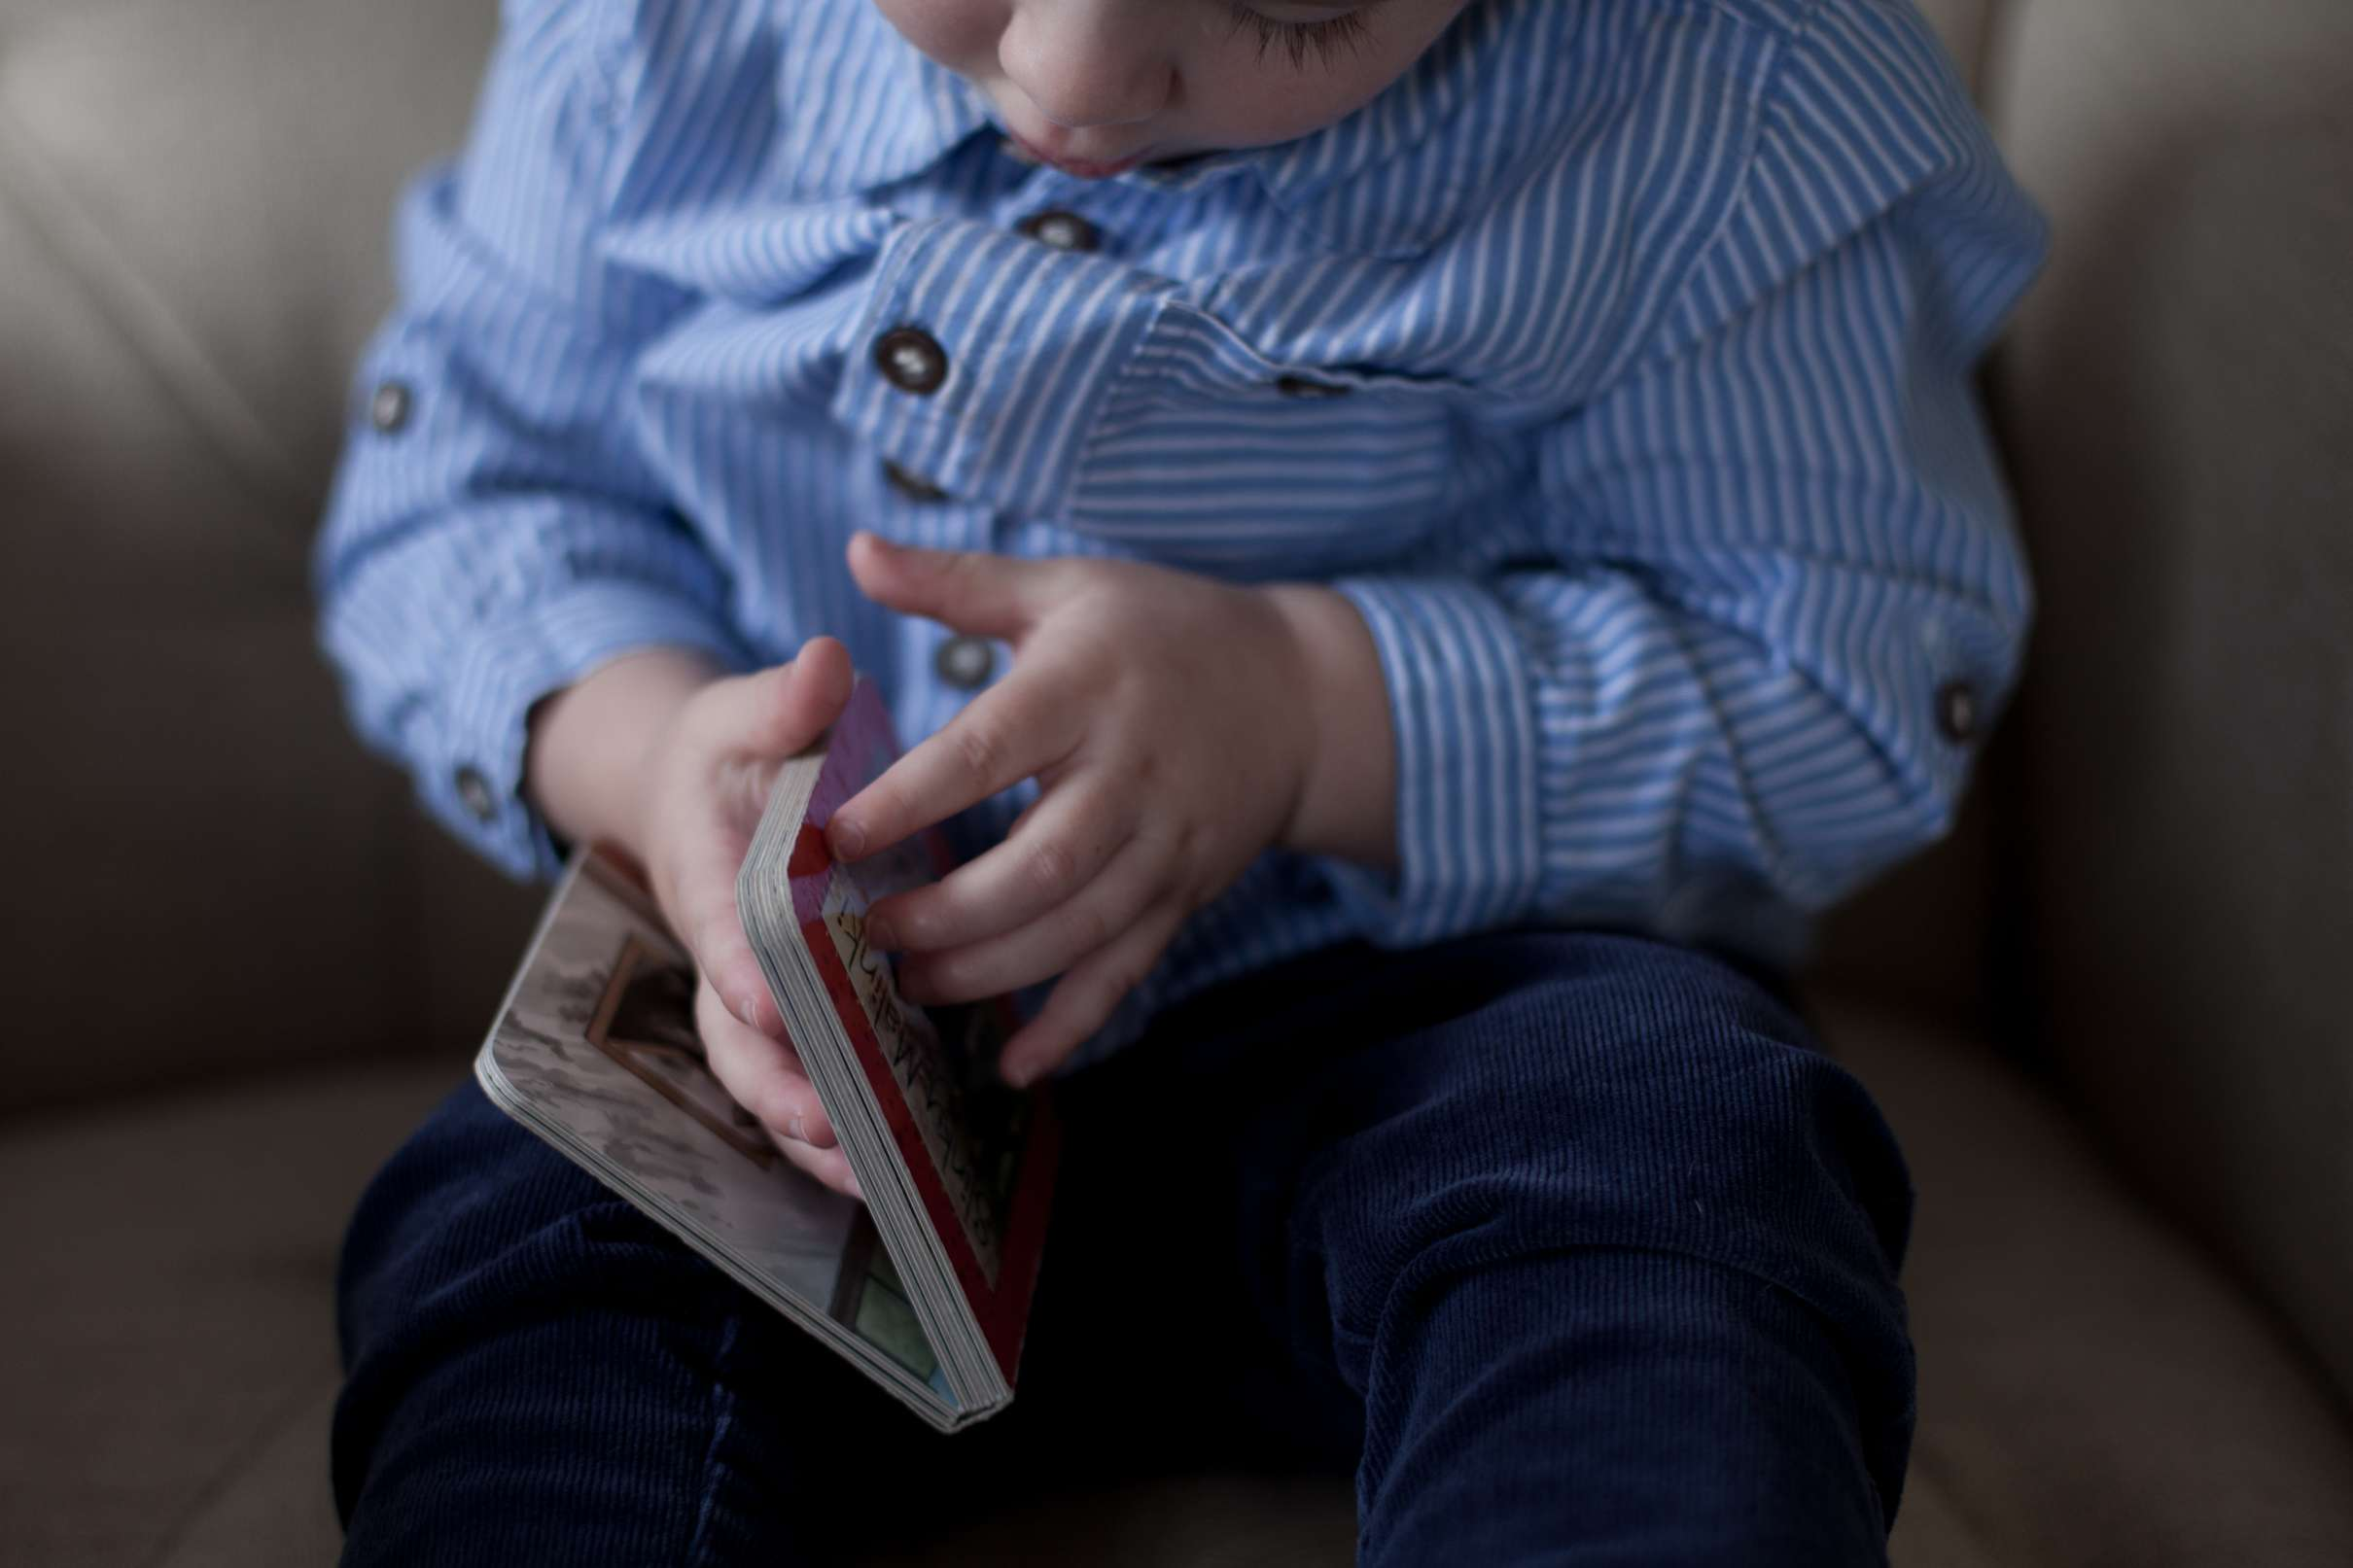 A portrait photo of a toddler holding a book